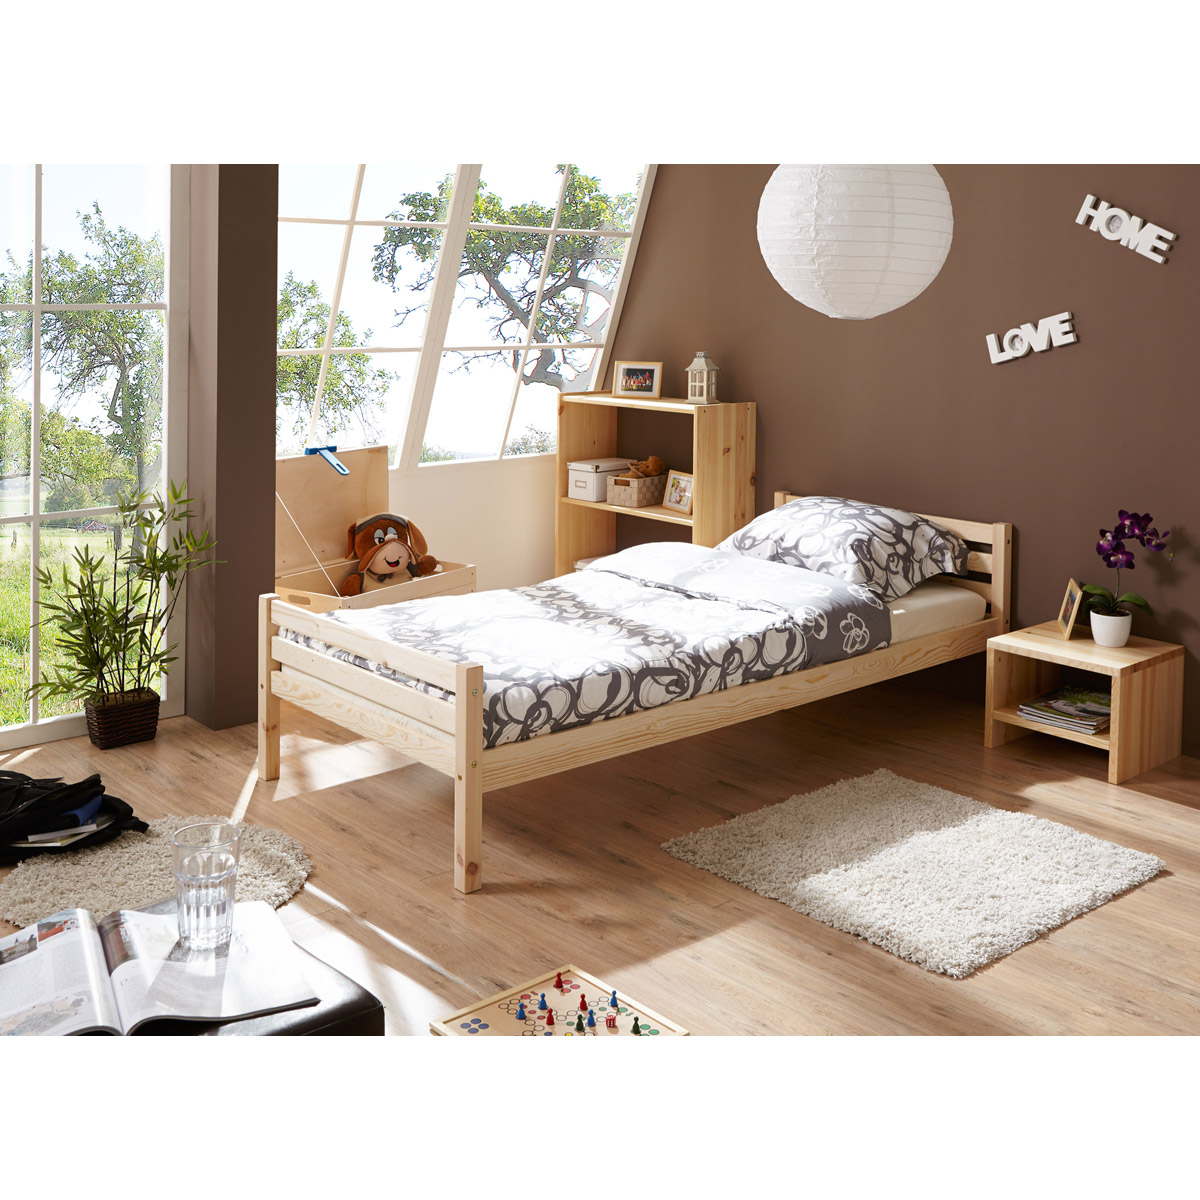 ticaa nadine einzelbett kiefer natur 90x200 cm portofrei. Black Bedroom Furniture Sets. Home Design Ideas